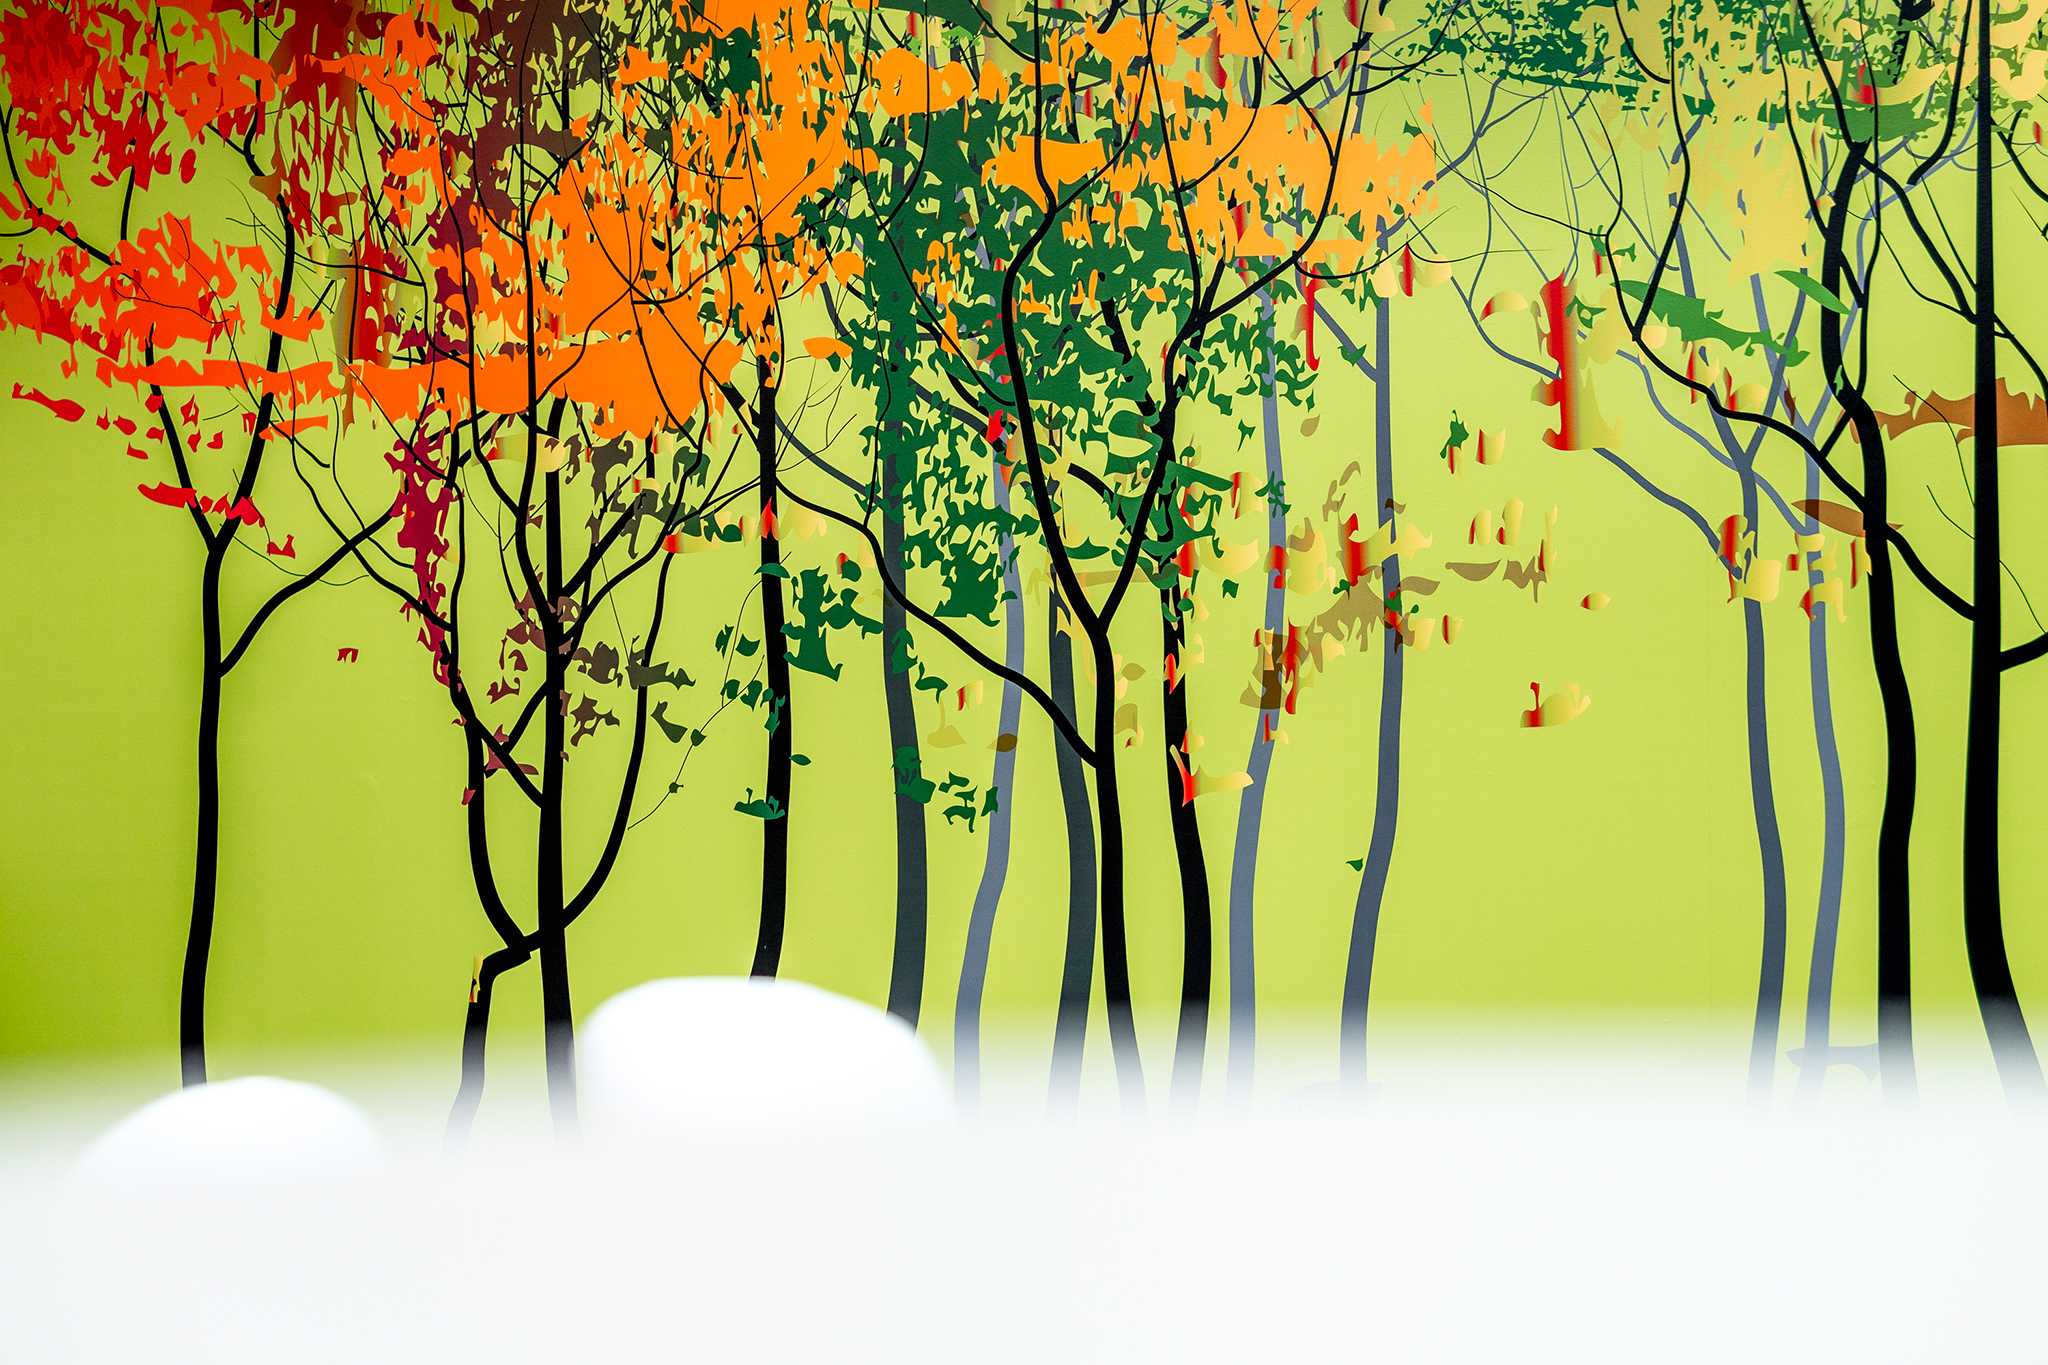 Vinyl wallpaper of autumn trees on a lime green background.